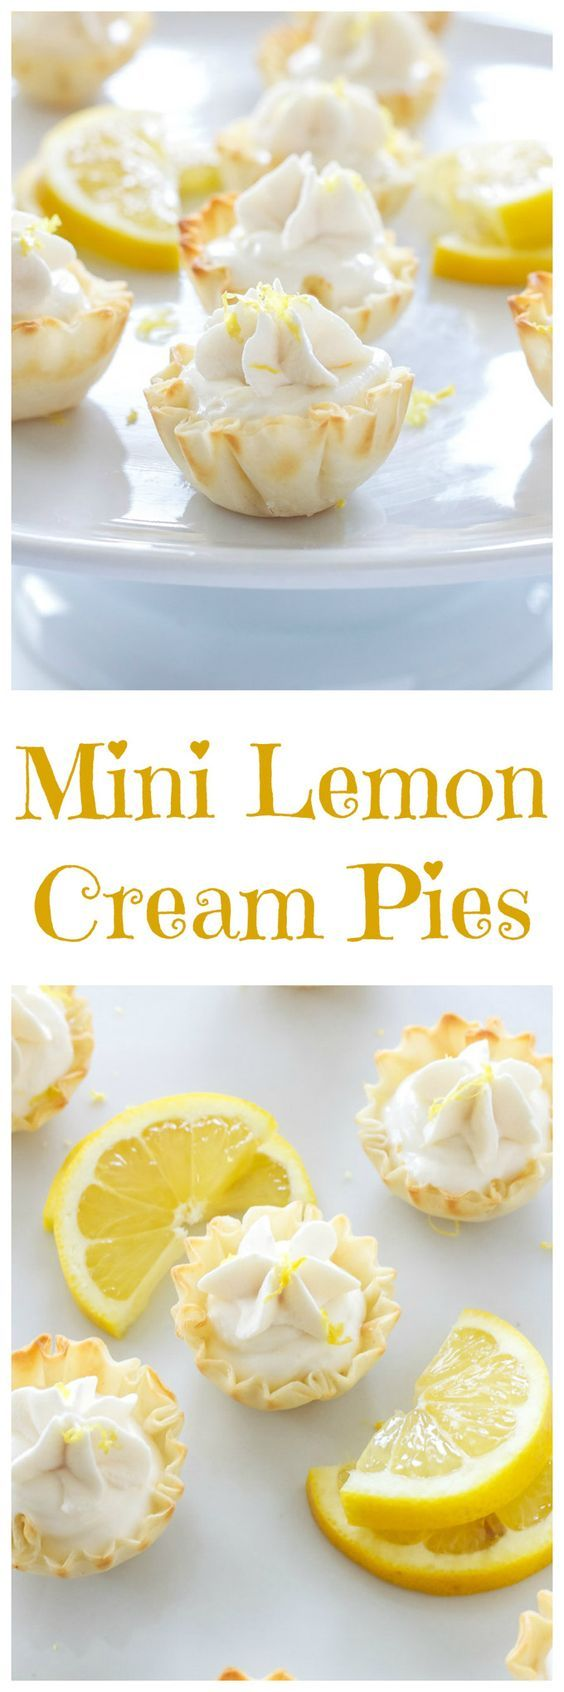 Mini Lemon Cream Pies | These one bite mini cream pies are a perfect sized dessert! | @reciperunner (canape food bite size)